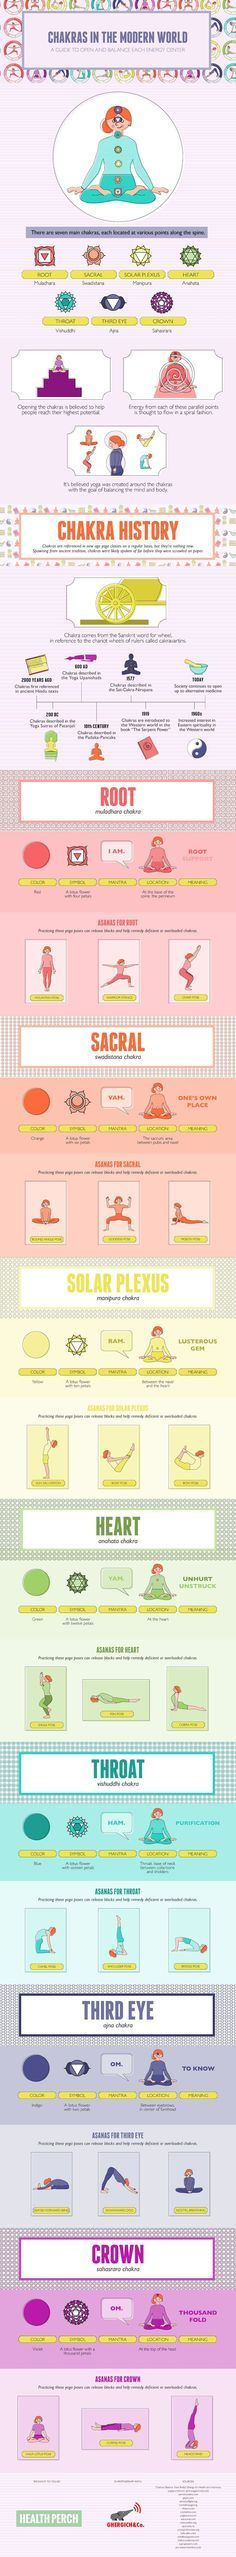 Balance Your 7 Chakras With These Yoga Poses & Mantras (Infographic):